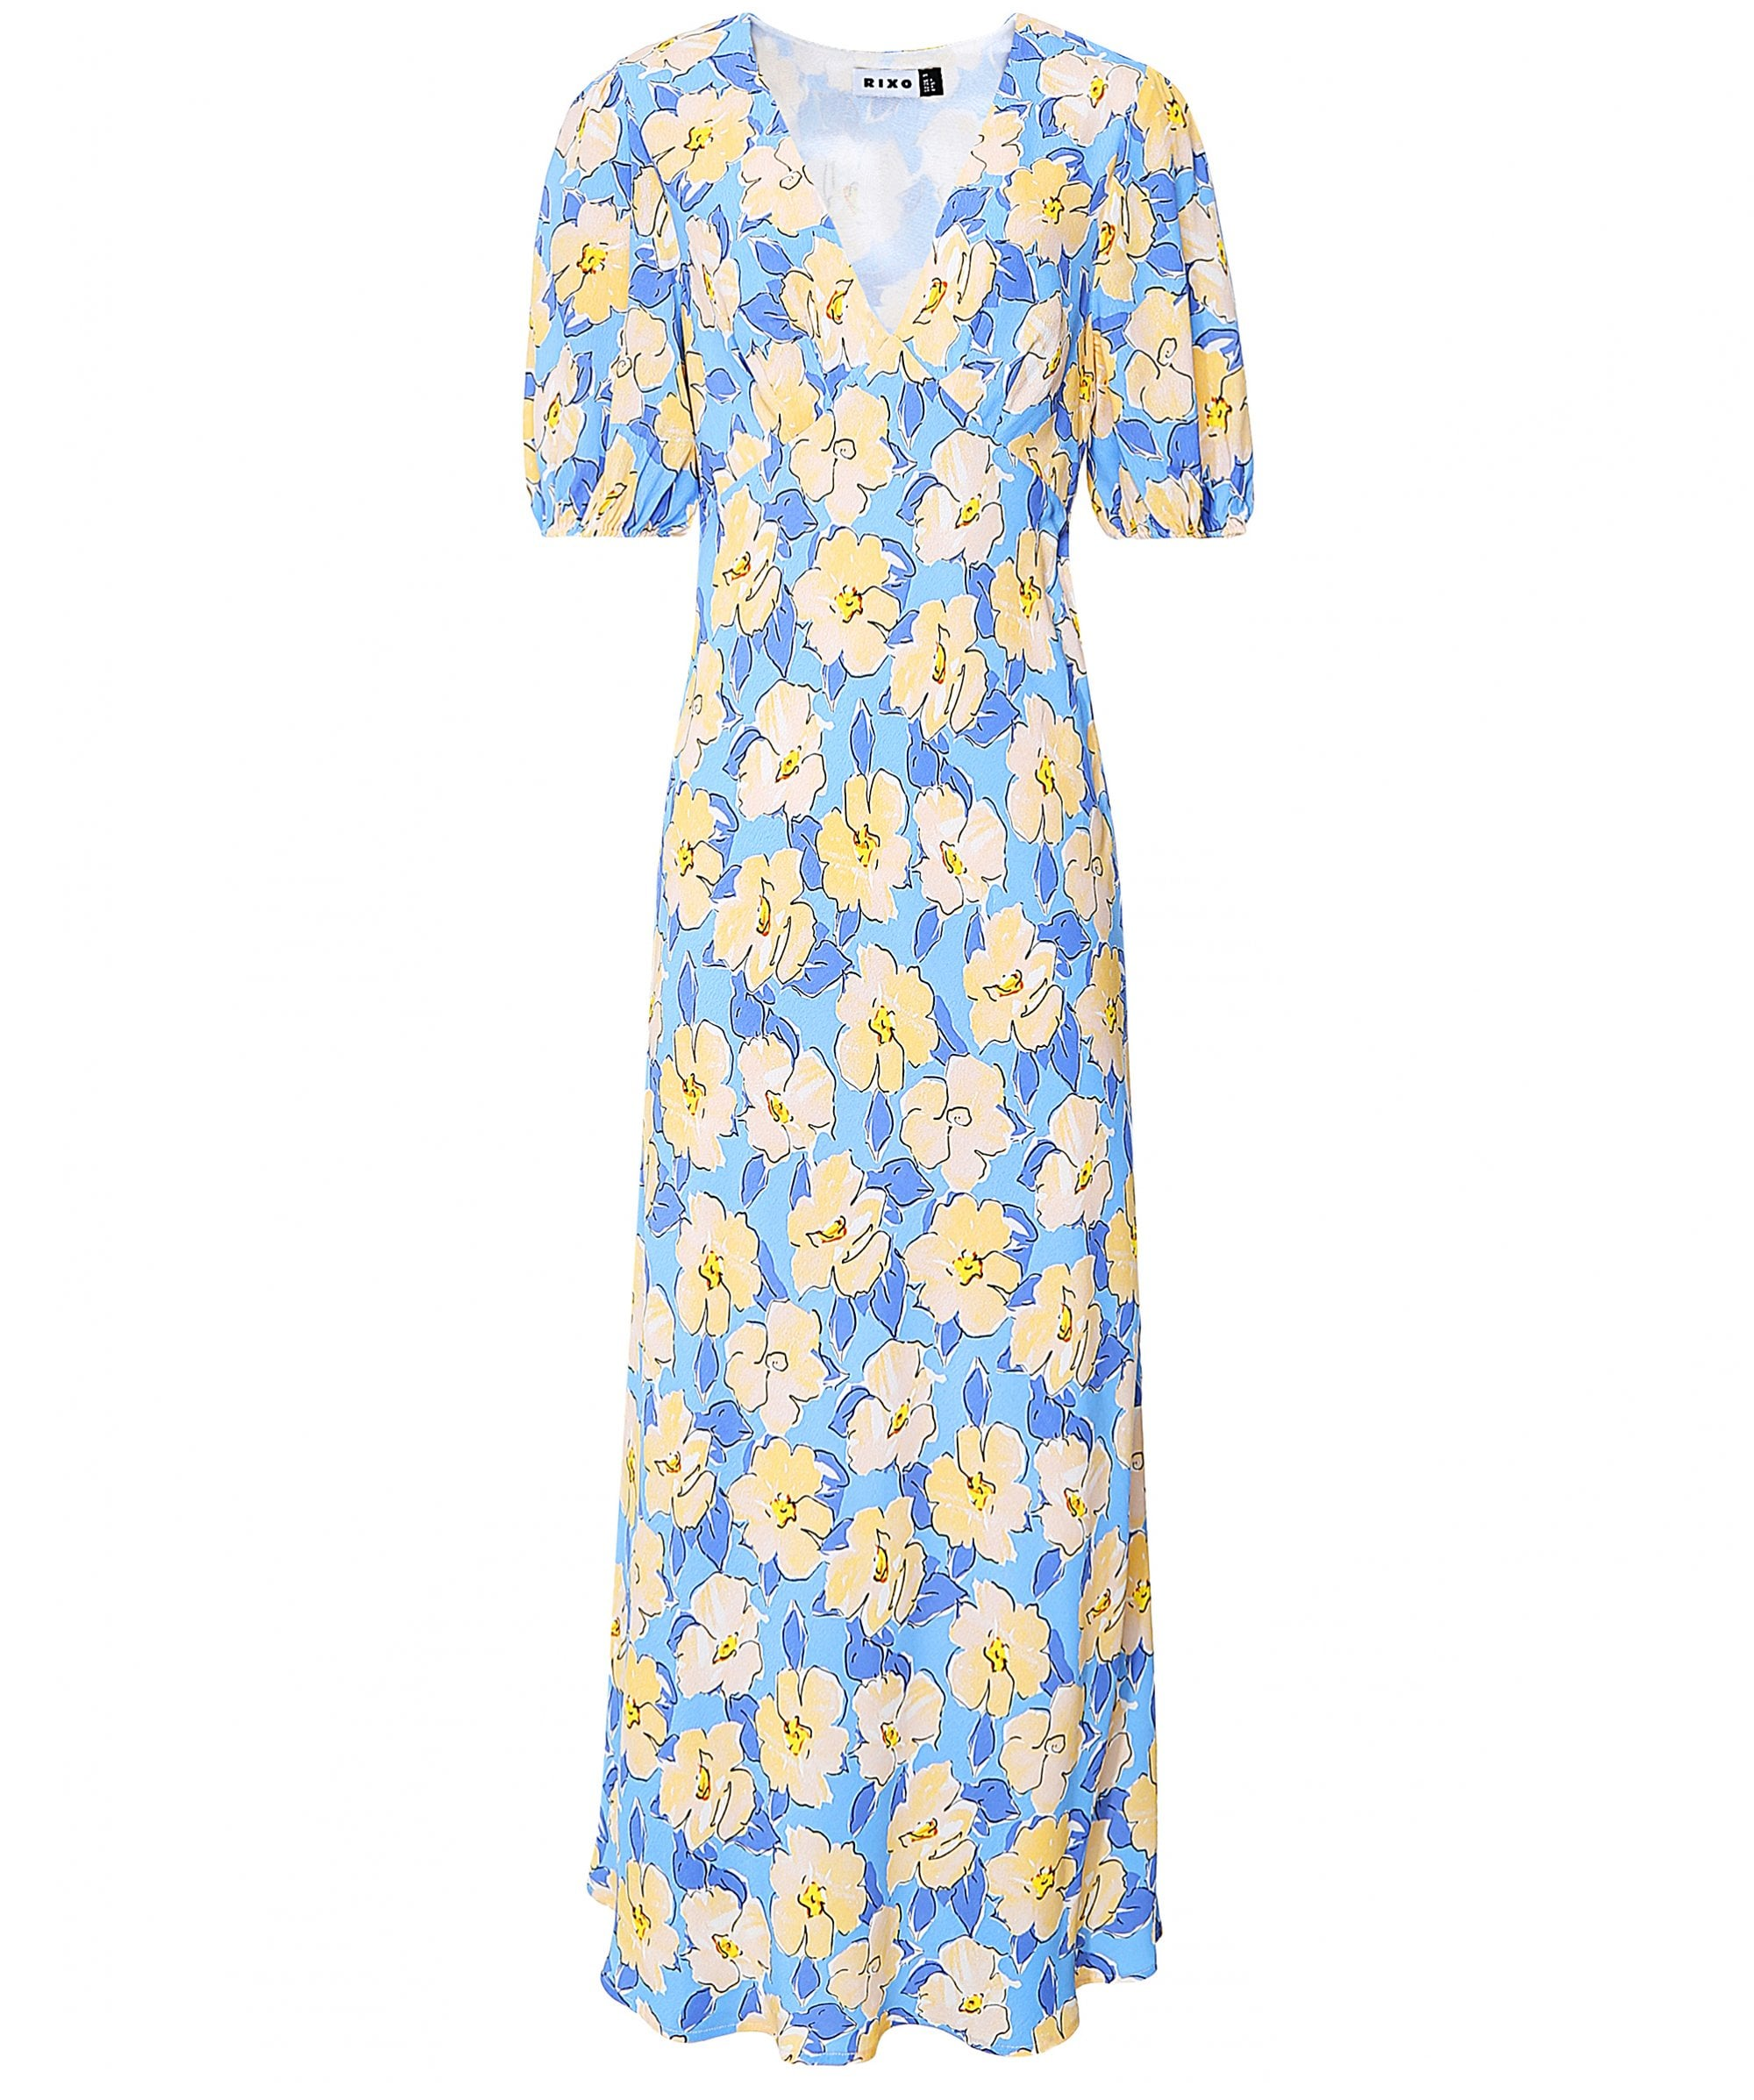 This is an image of a blue and yellow floral midi dress with v-neck